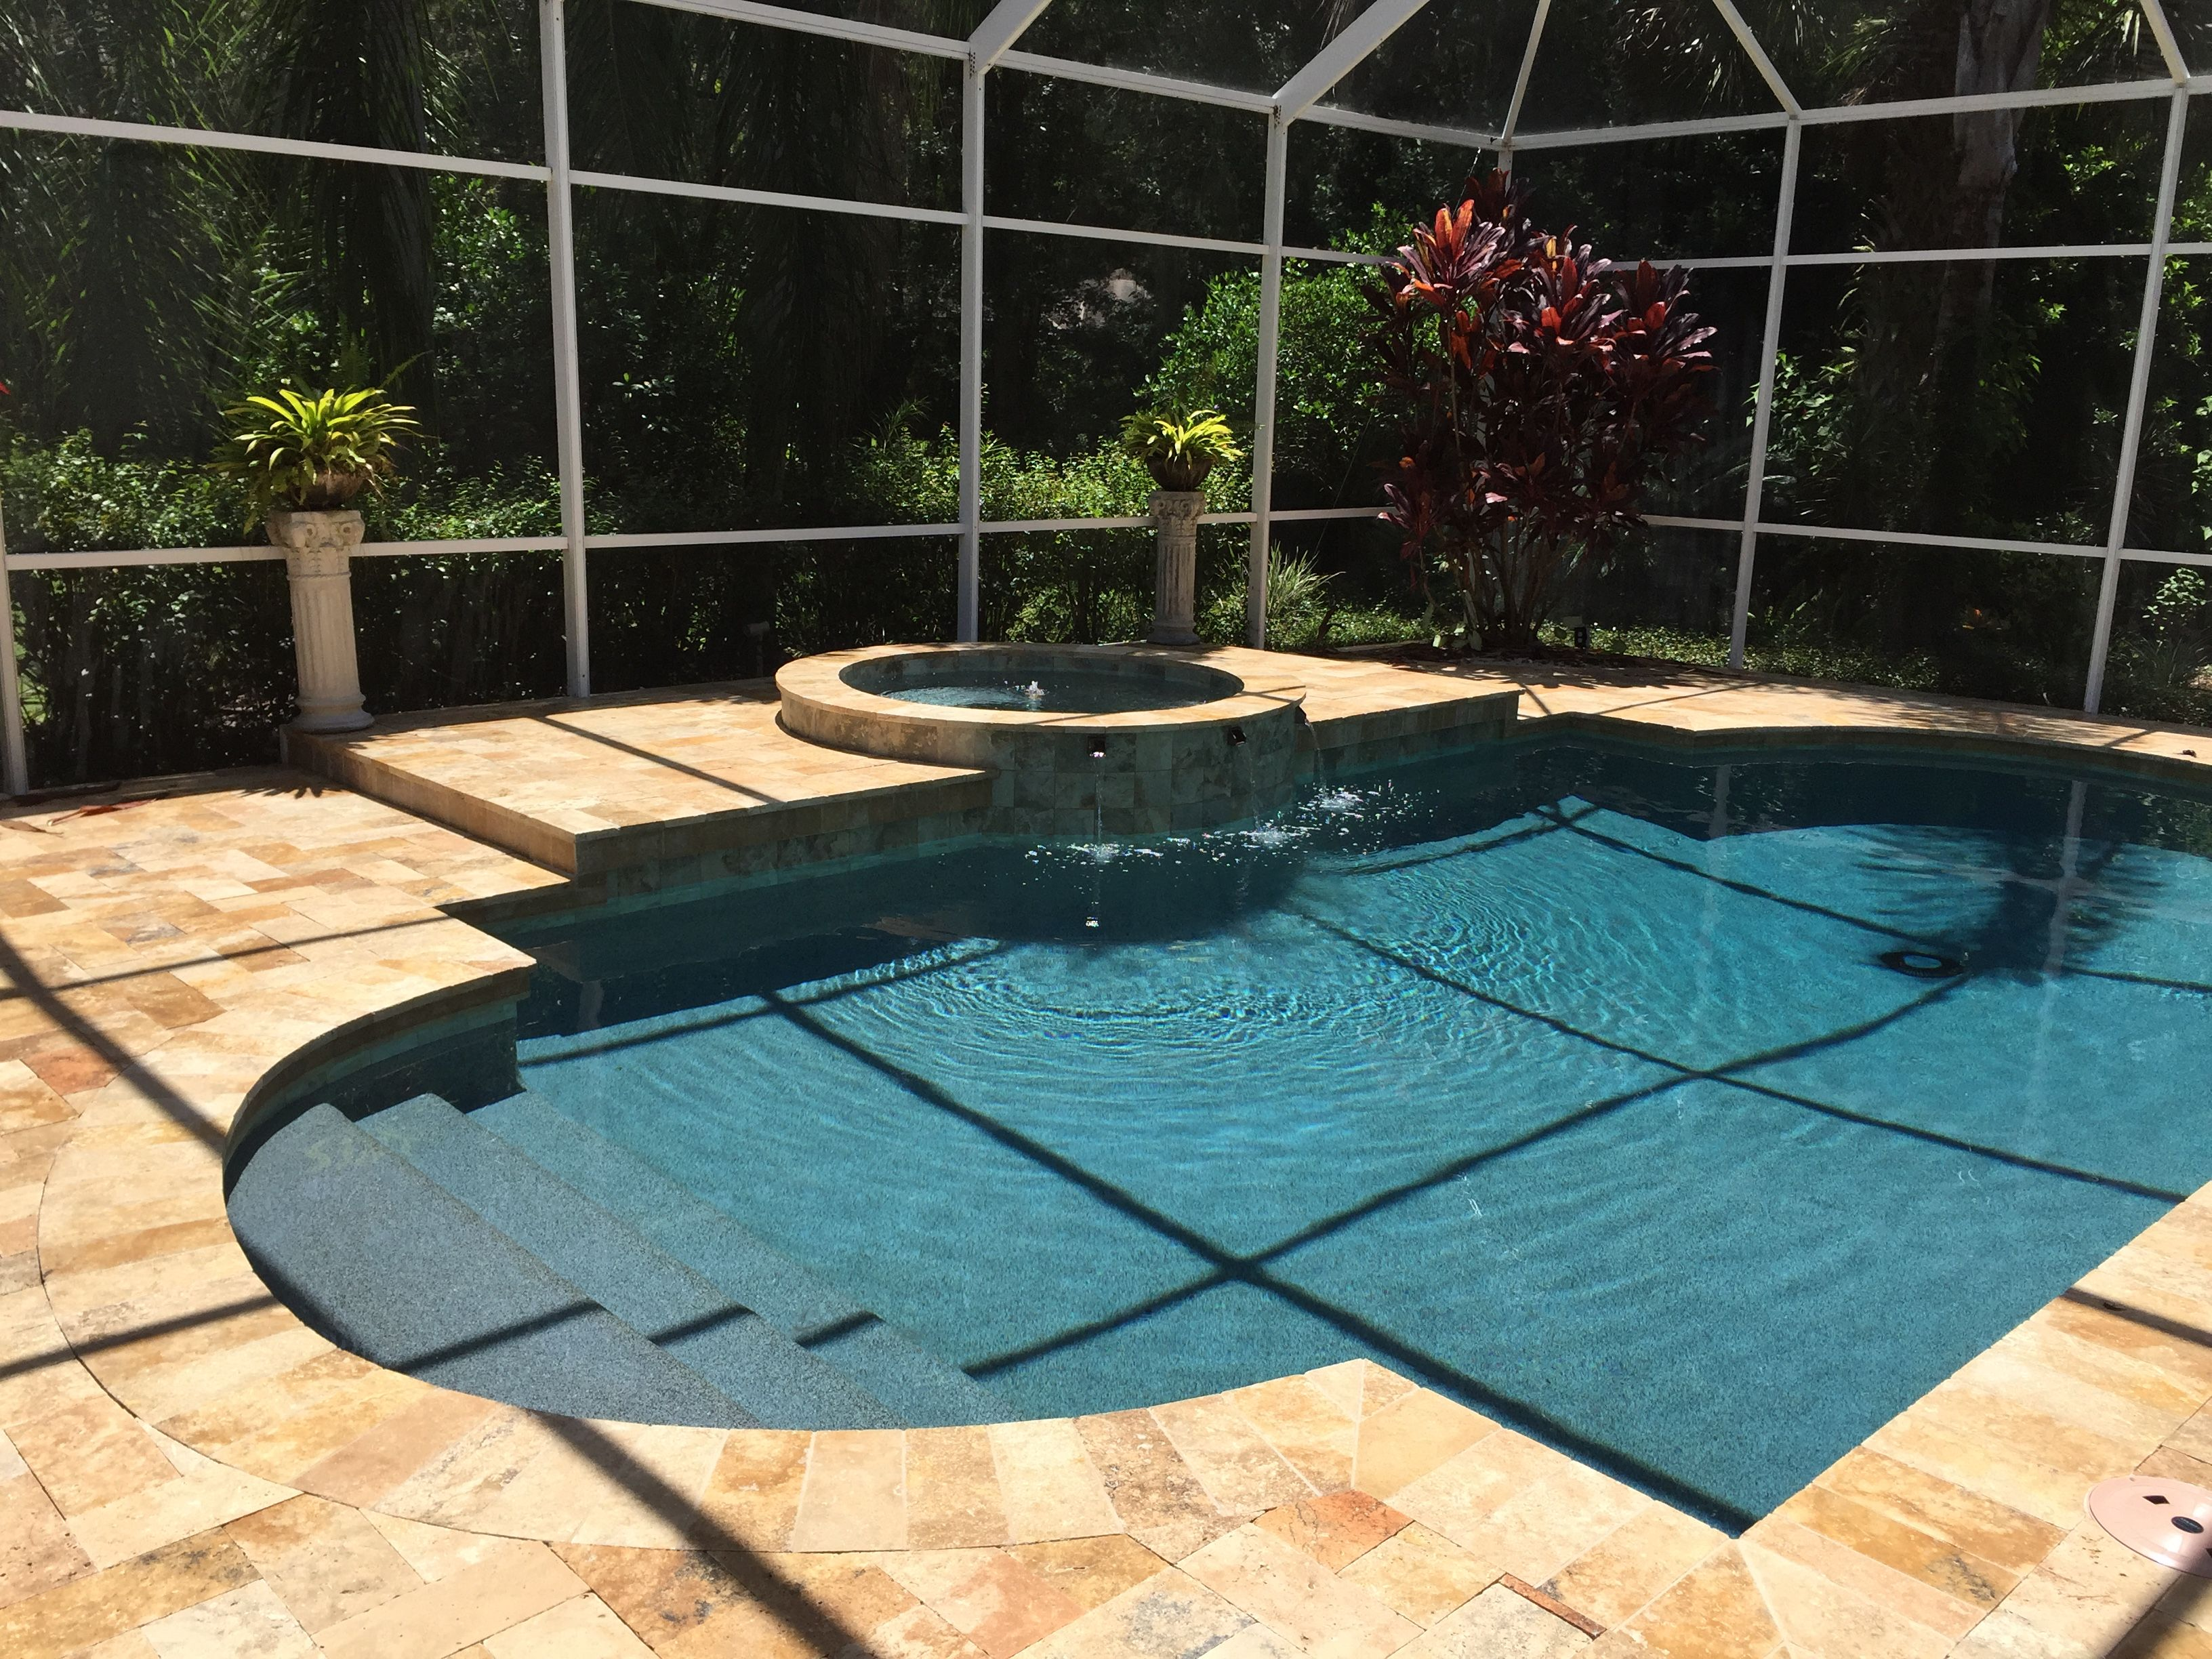 New Pool With Custom Natural Rock Waterfall, Fire Feature And